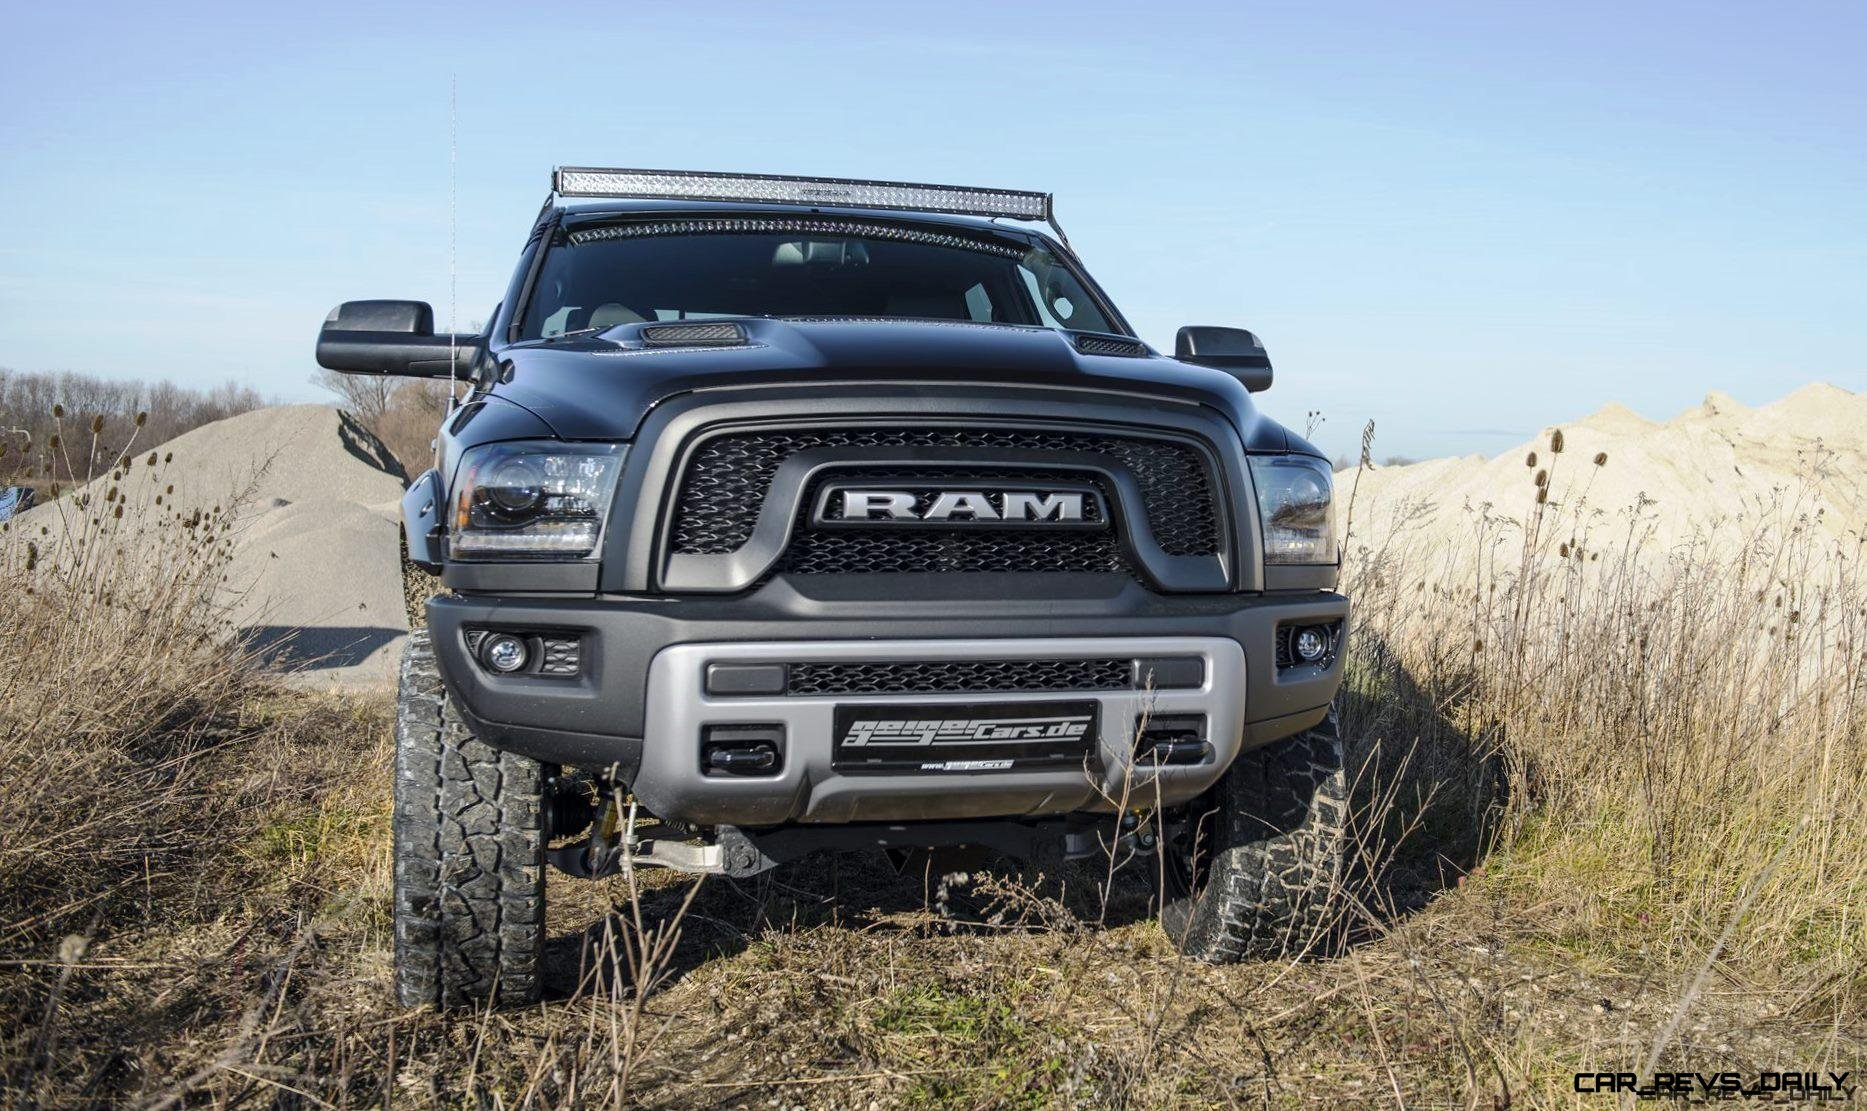 2016 RAM REBEL by GeigerCars